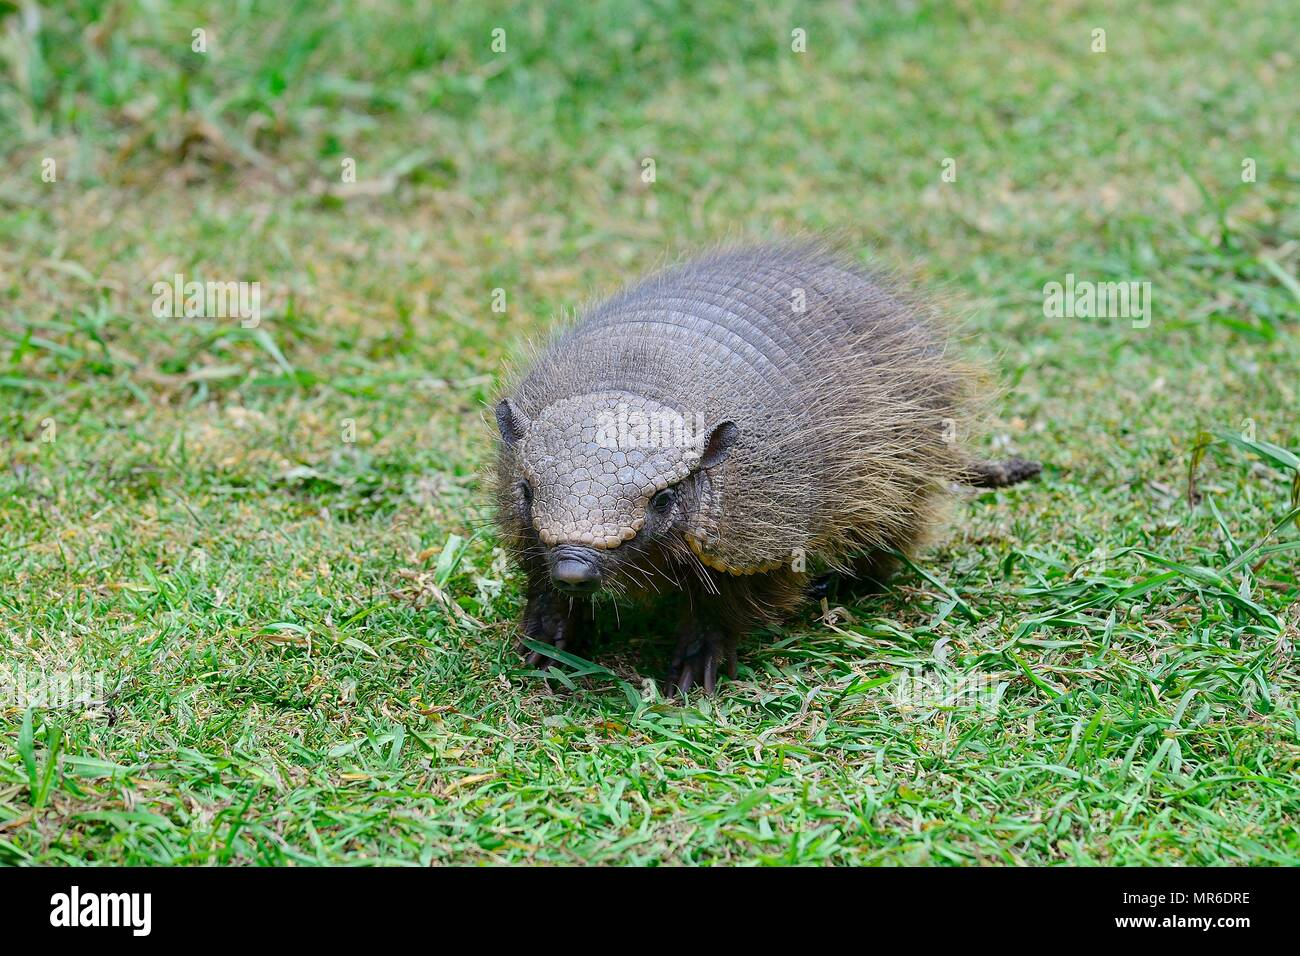 Big hairy armadillo (Chaetophractus villosus) in the grass, Parque Nacional Torres del Paine, Region de Magellanes, Chile - Stock Image